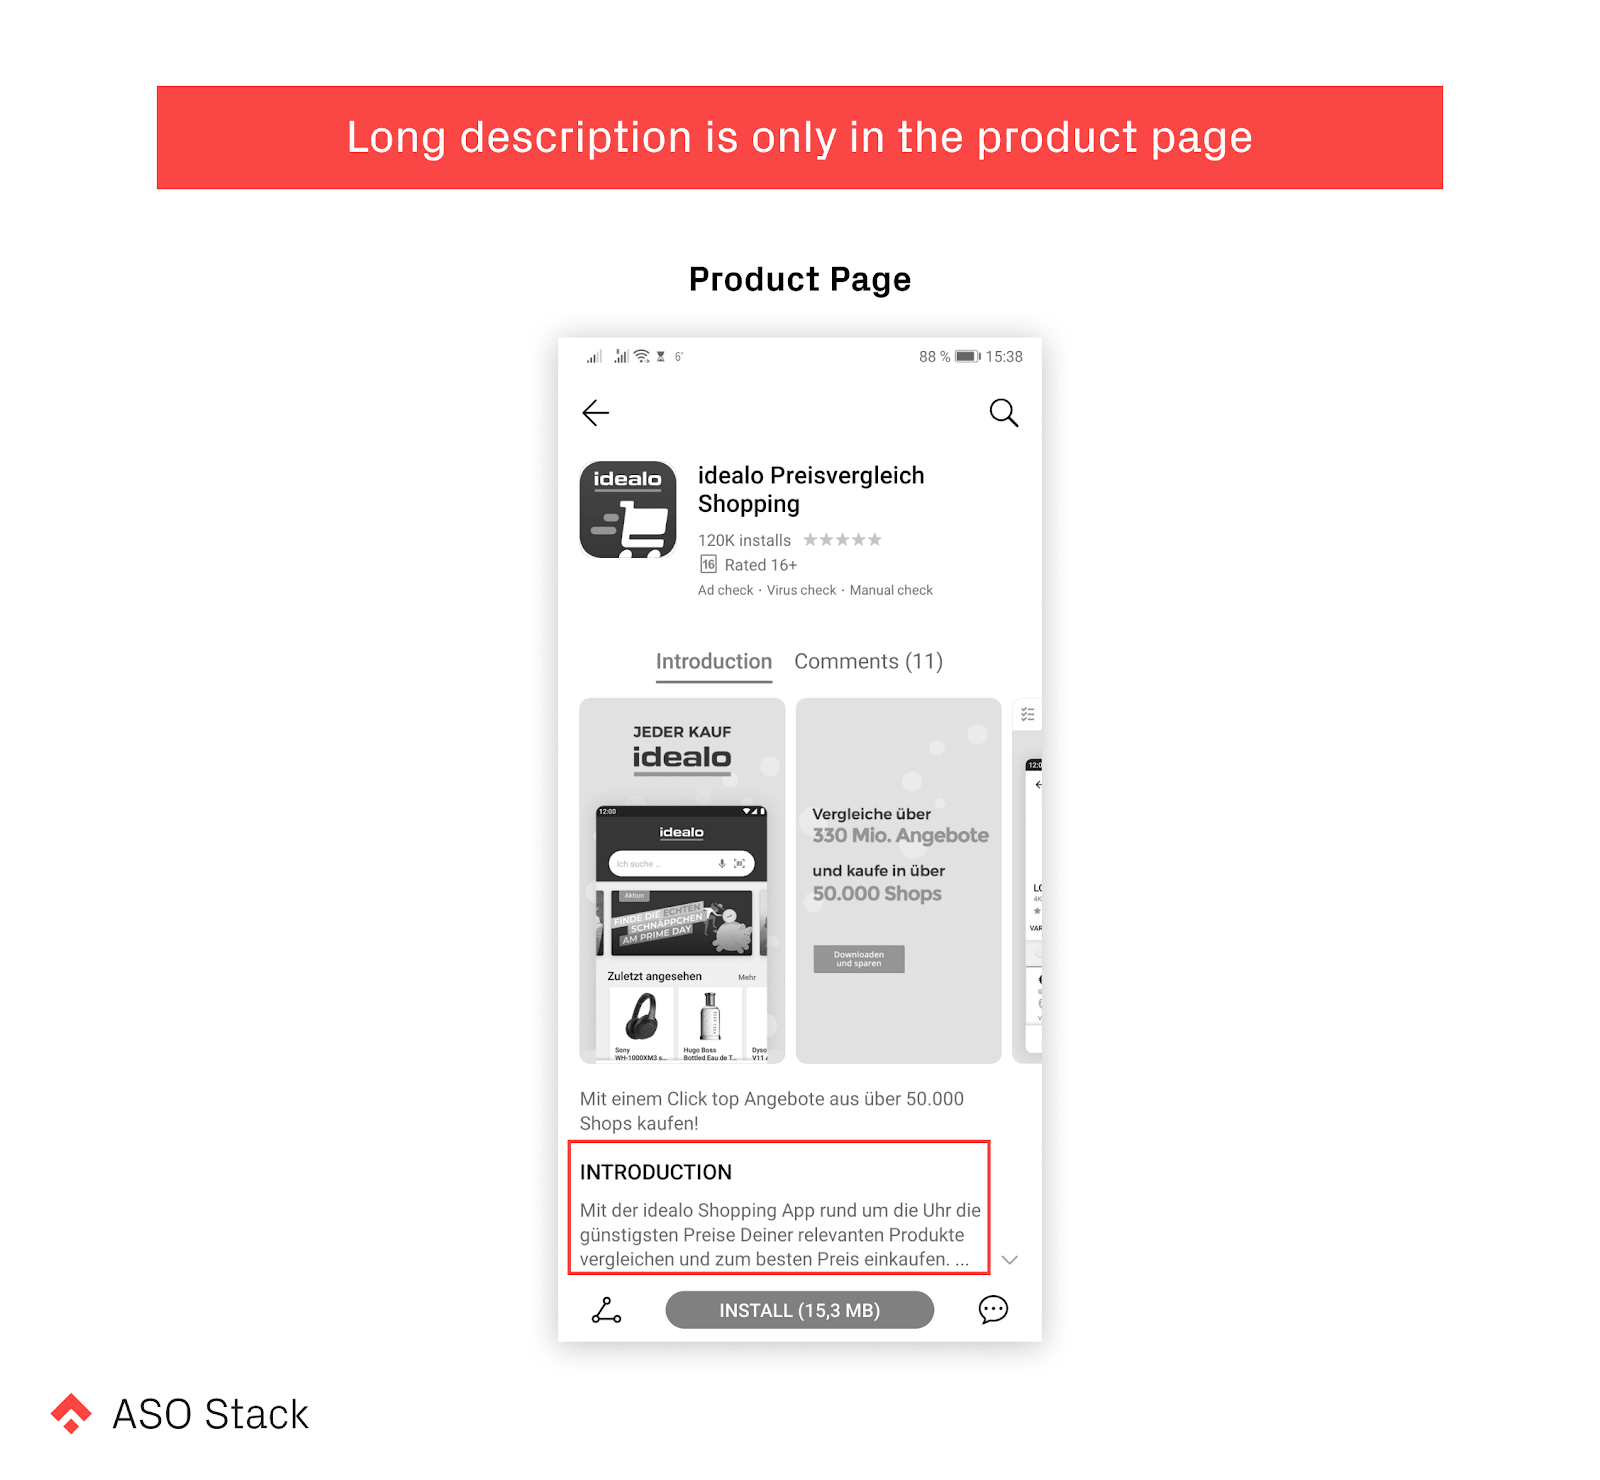 long description is only in the product page